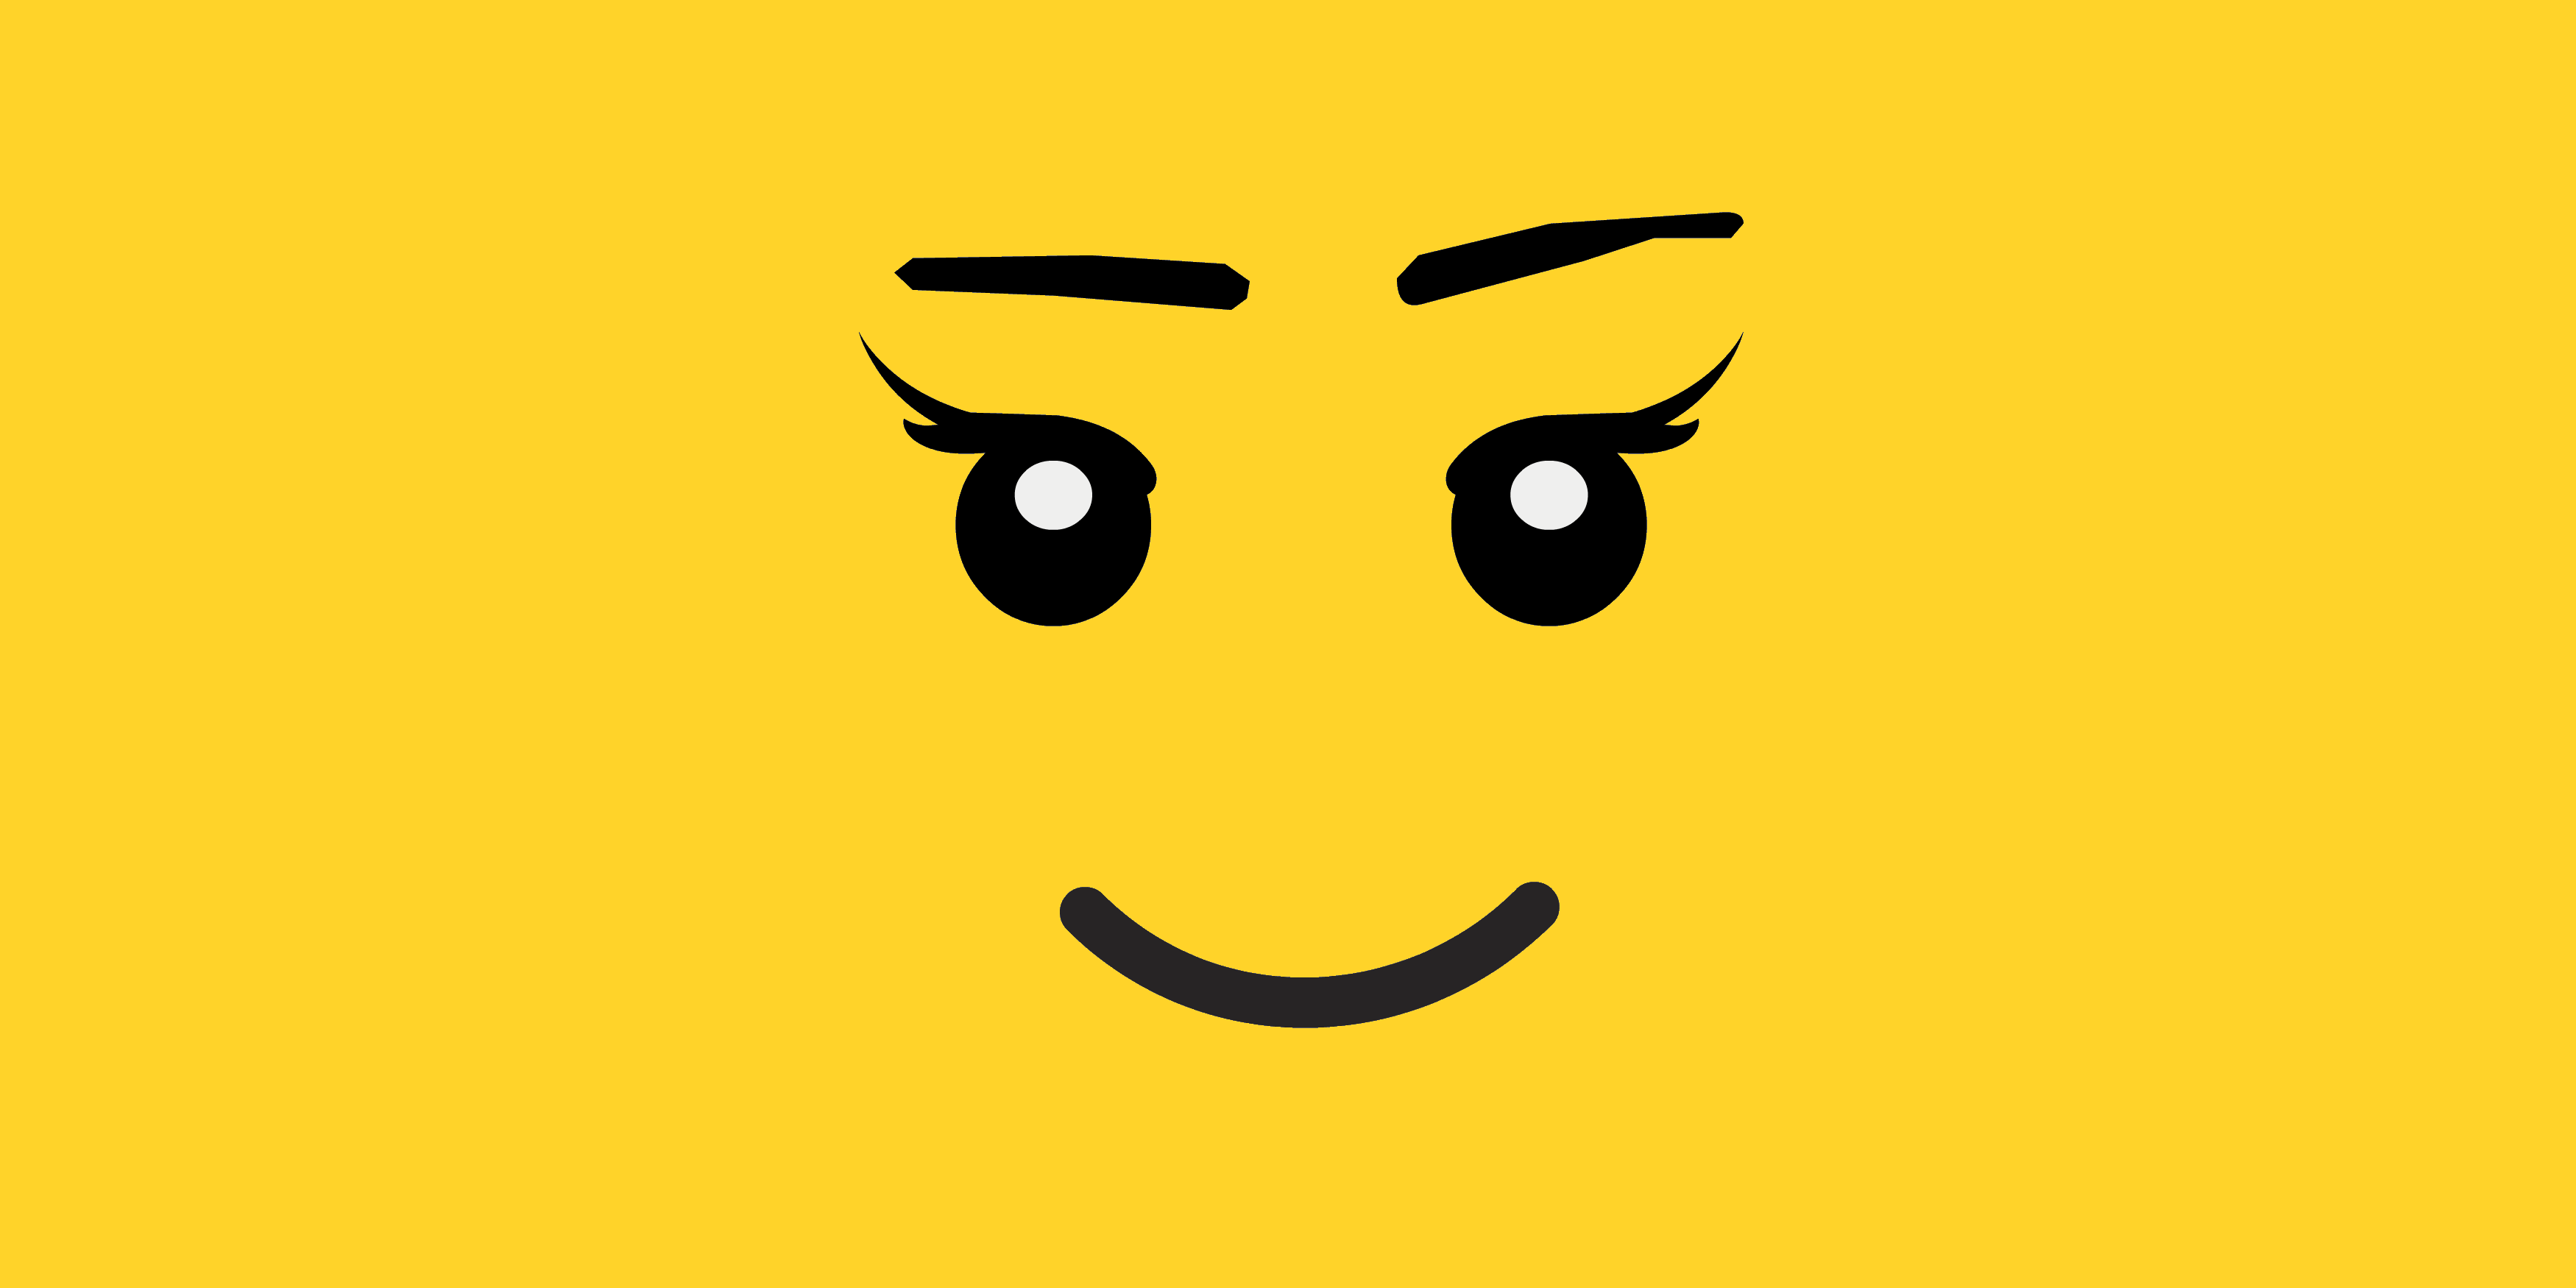 Lego Faces Printable That Are Clean